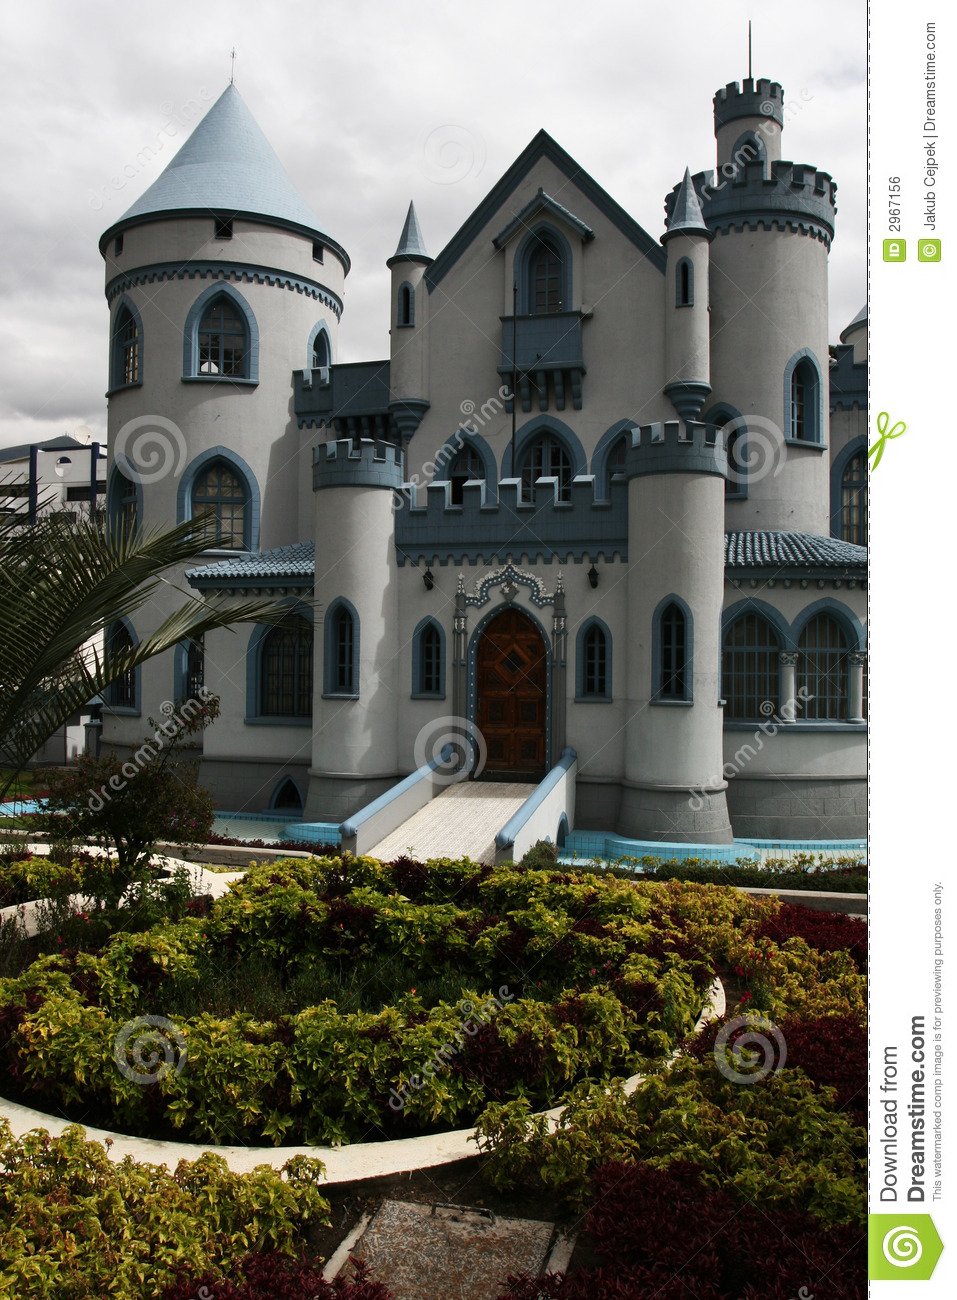 Brownstone house royalty free stock image image 2967156 for Castle like house plans